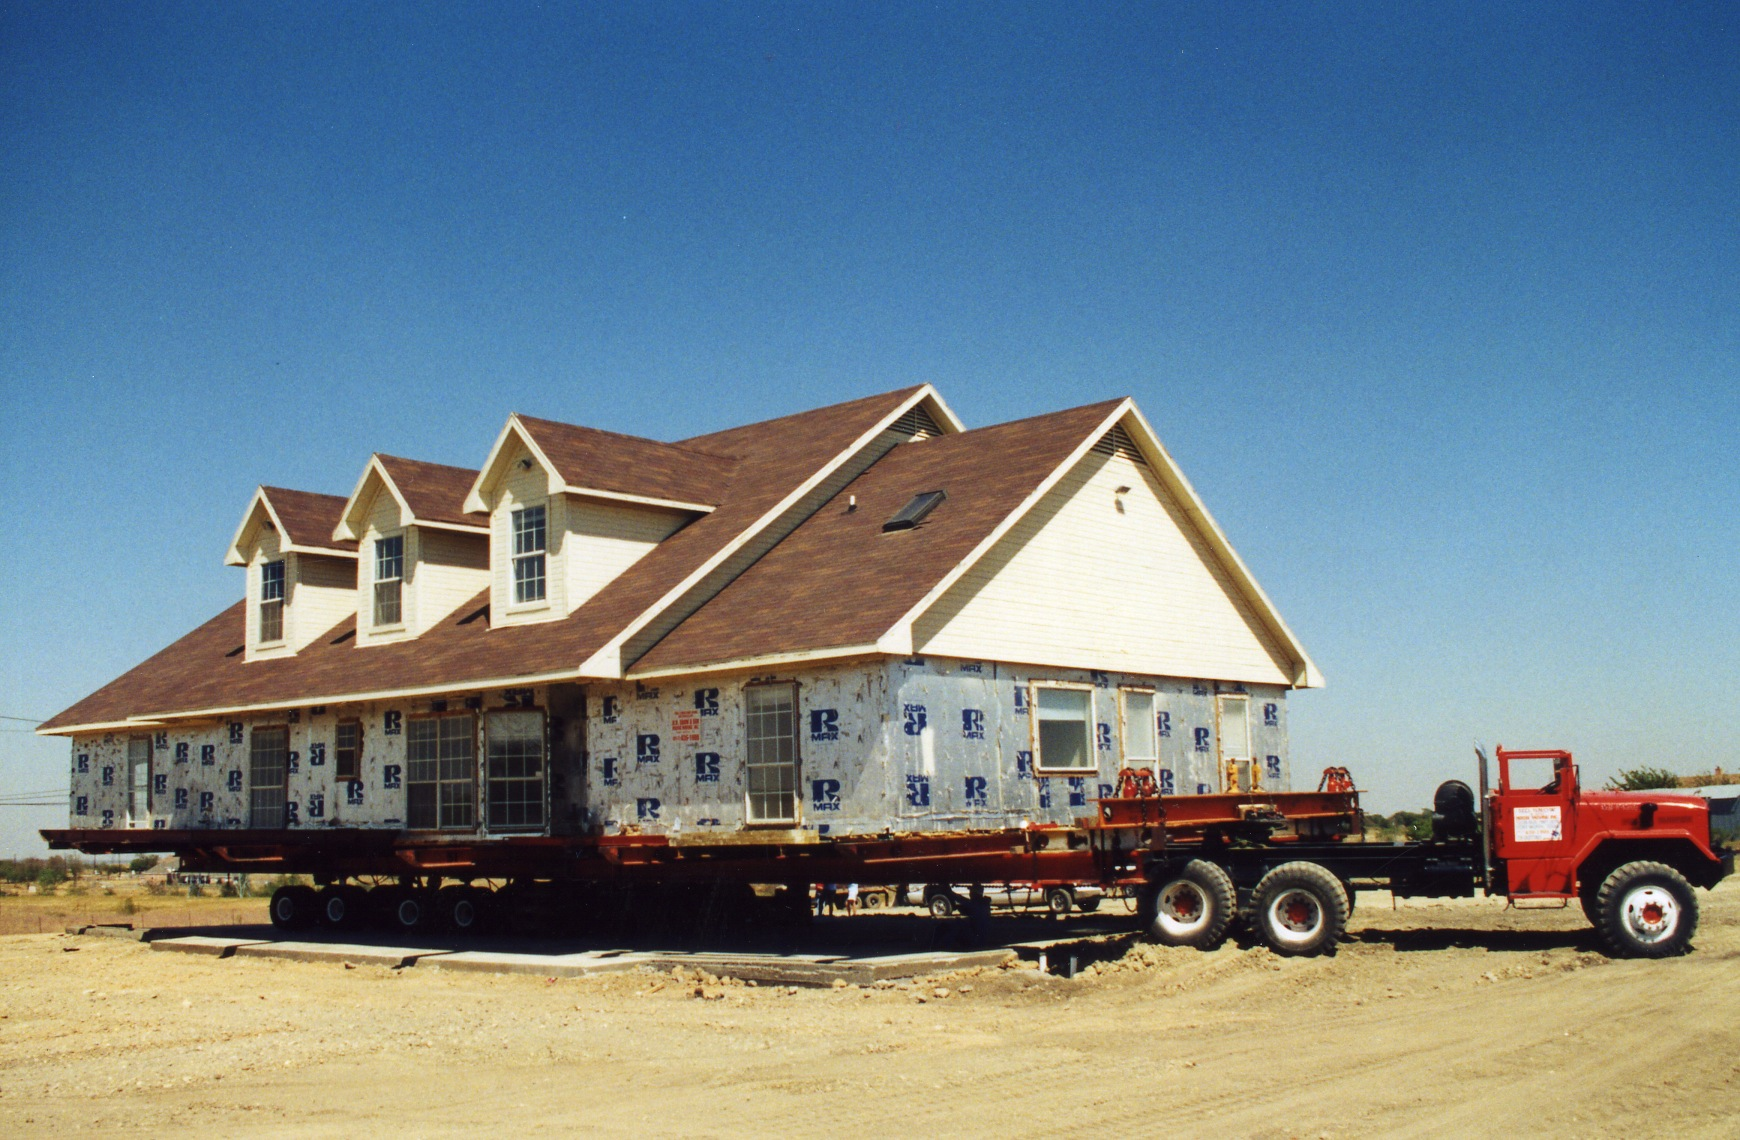 Photos h d snow and son house moving inc for Slab homes